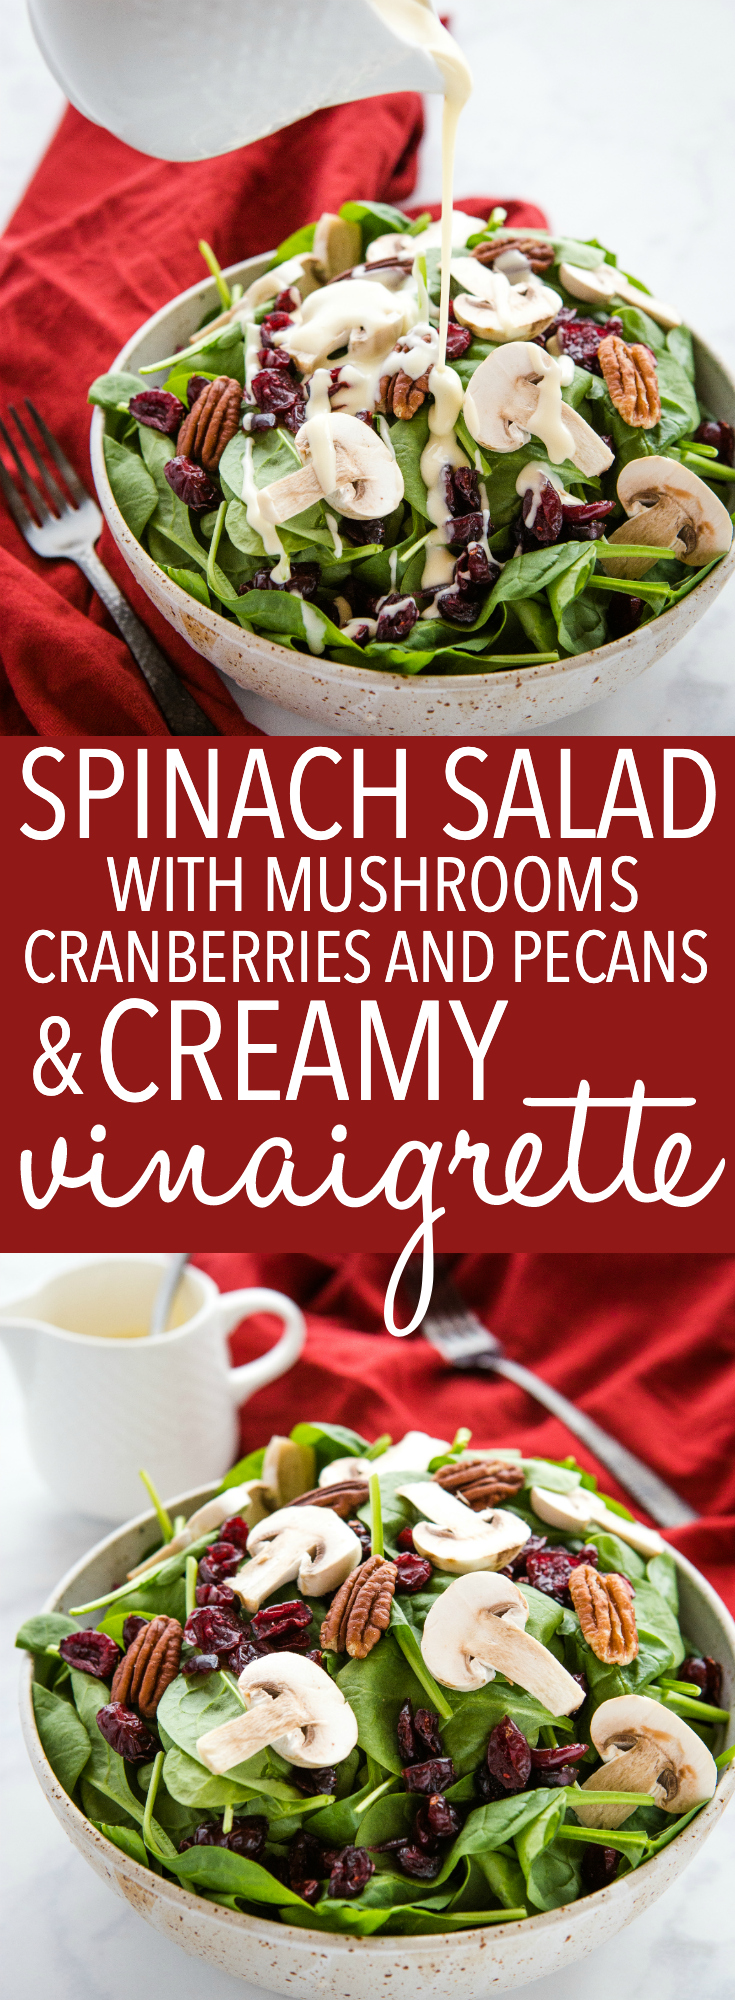 Spinach Salad With Creamy Vinaigrette The Busy Baker